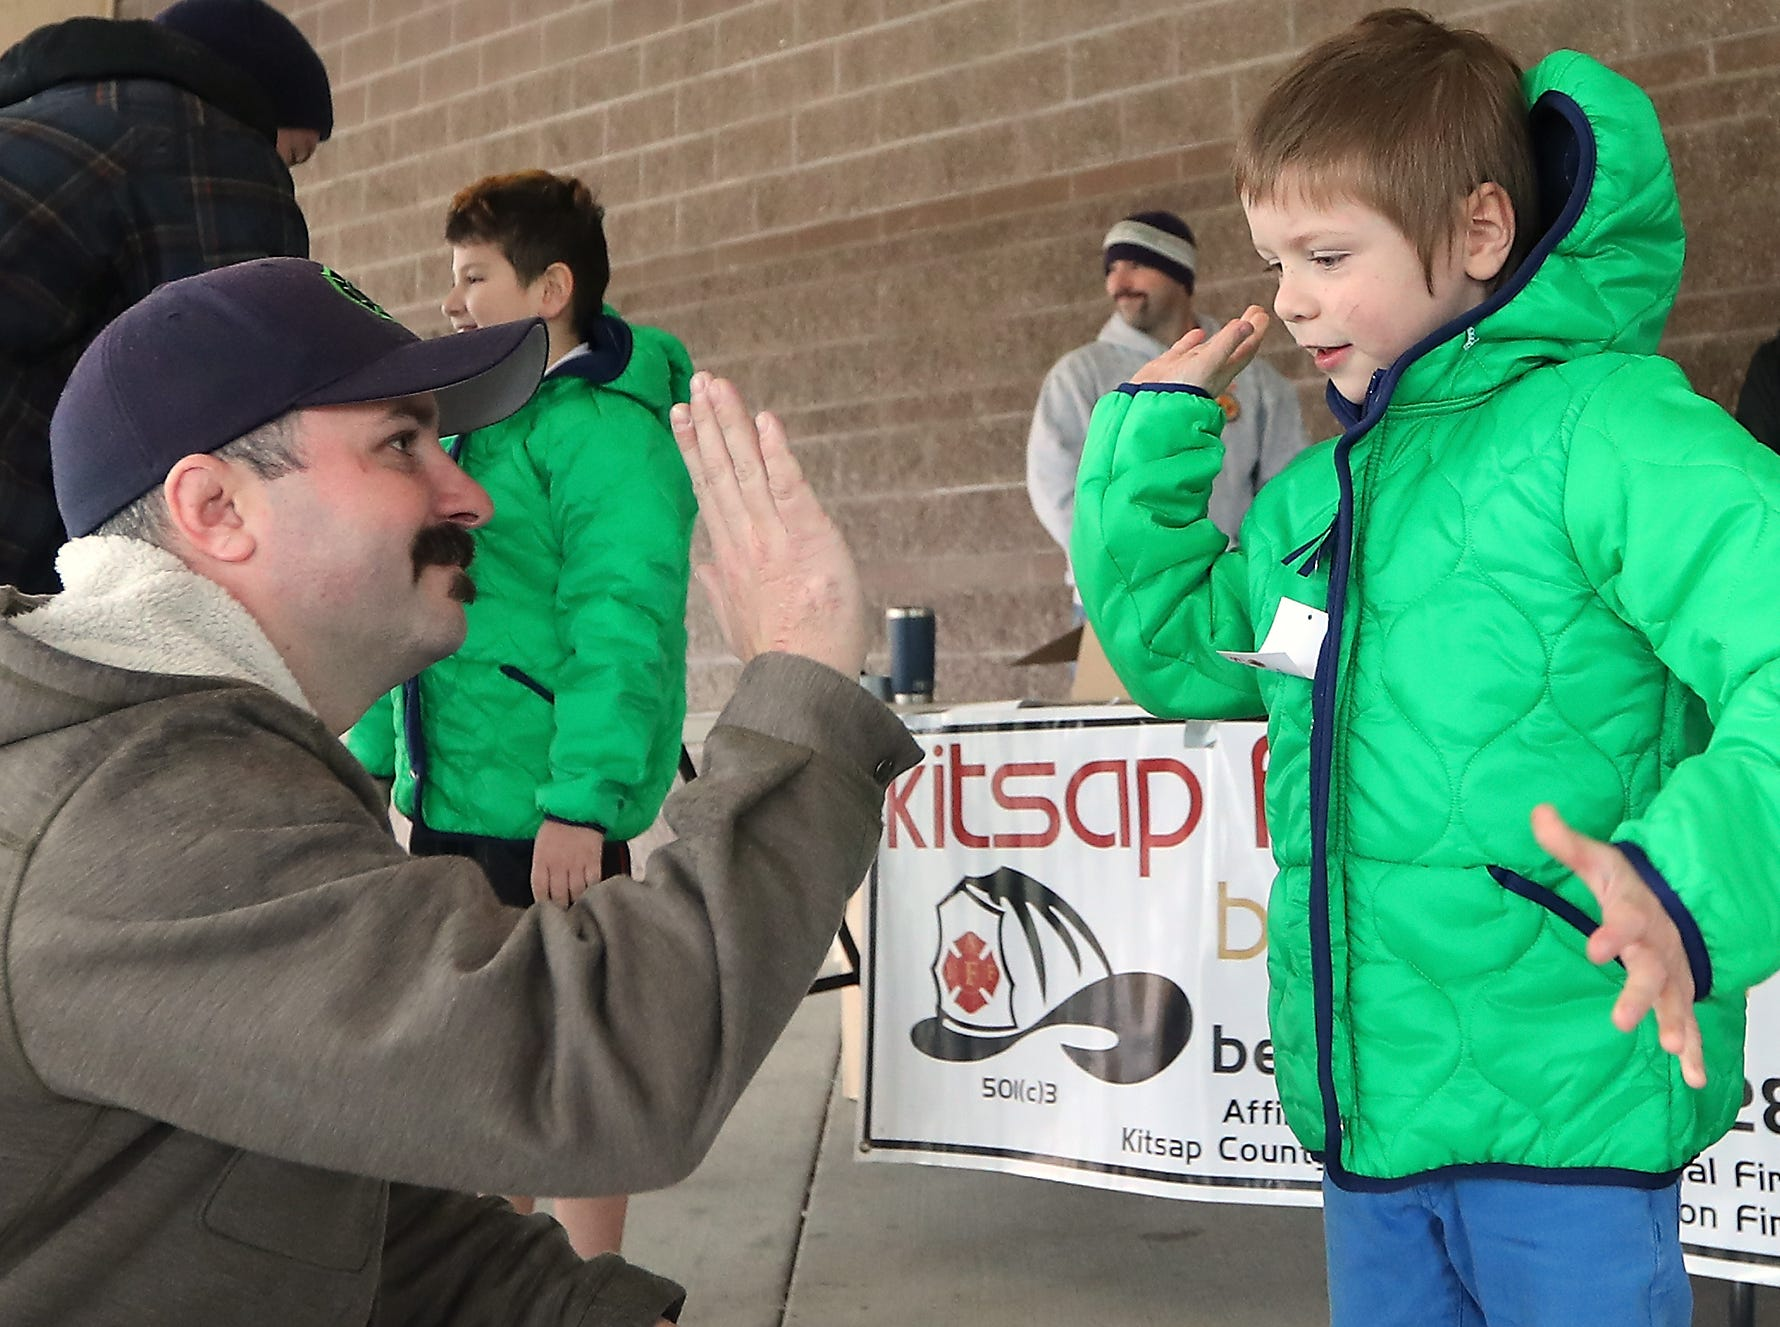 Bremerton firefighter Rickey Muttart gets a high-five from student Damen Bisbee, 8, after Bisbee and fellow classmates received new coats as part of the Kitsap Fire Fighters Benevolent Fund annual Coats for Kids event held at Kitsap Lake Elementary School on Wednesday, November 28, 2018.